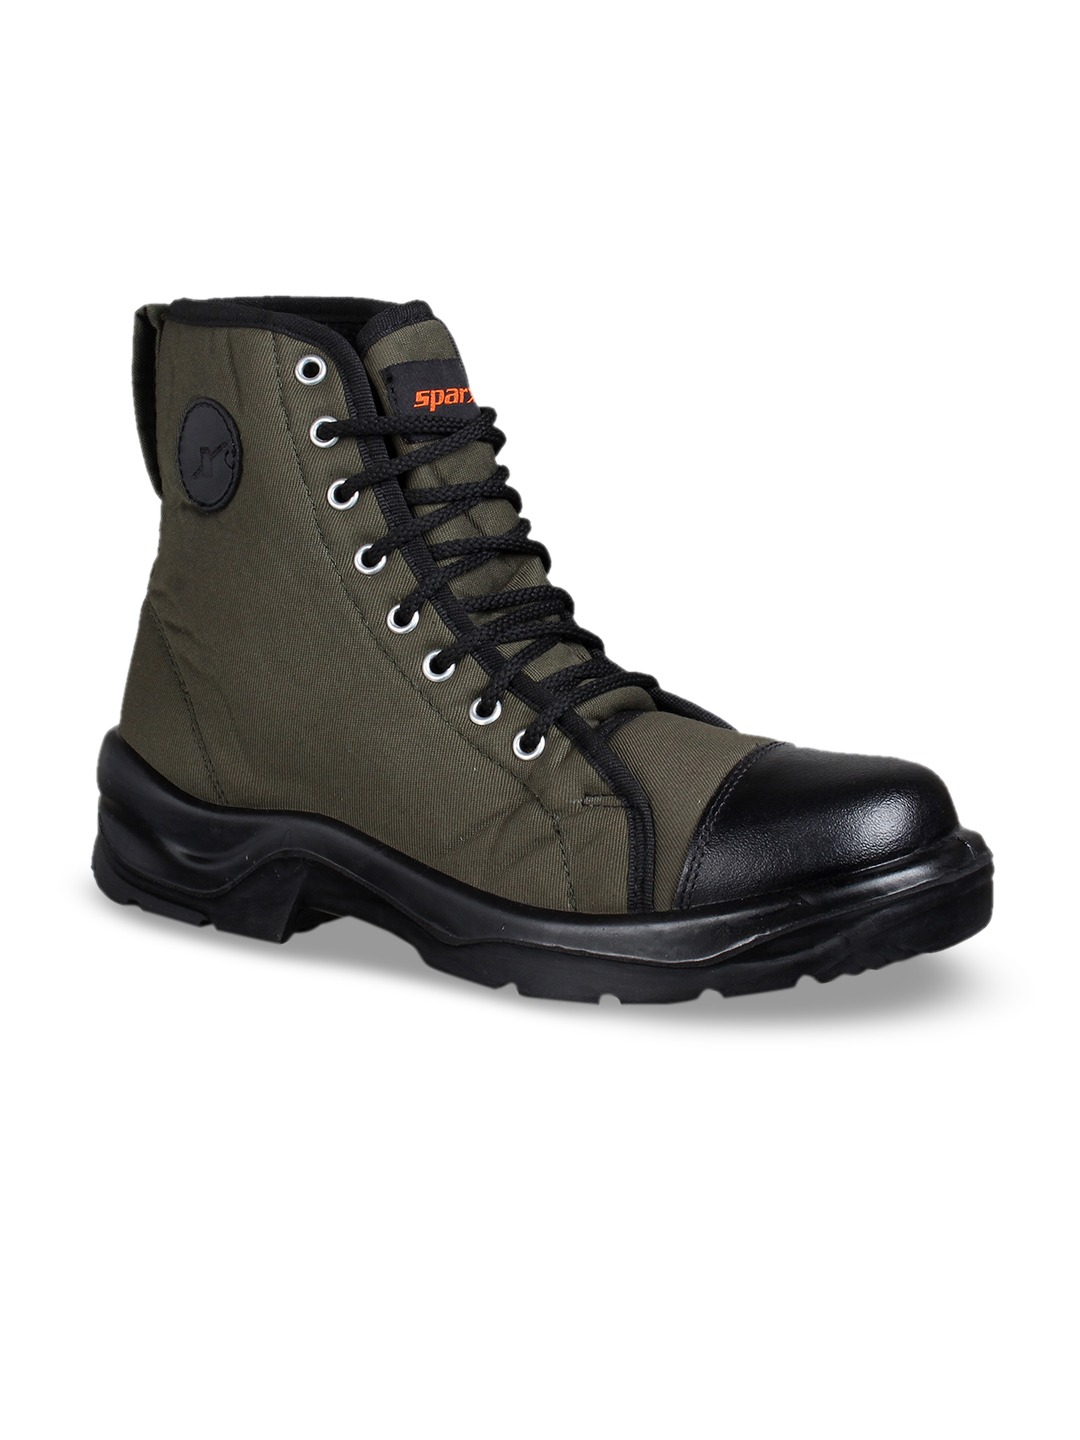 Olive Green Solid Canvas High-Top Flat Boots